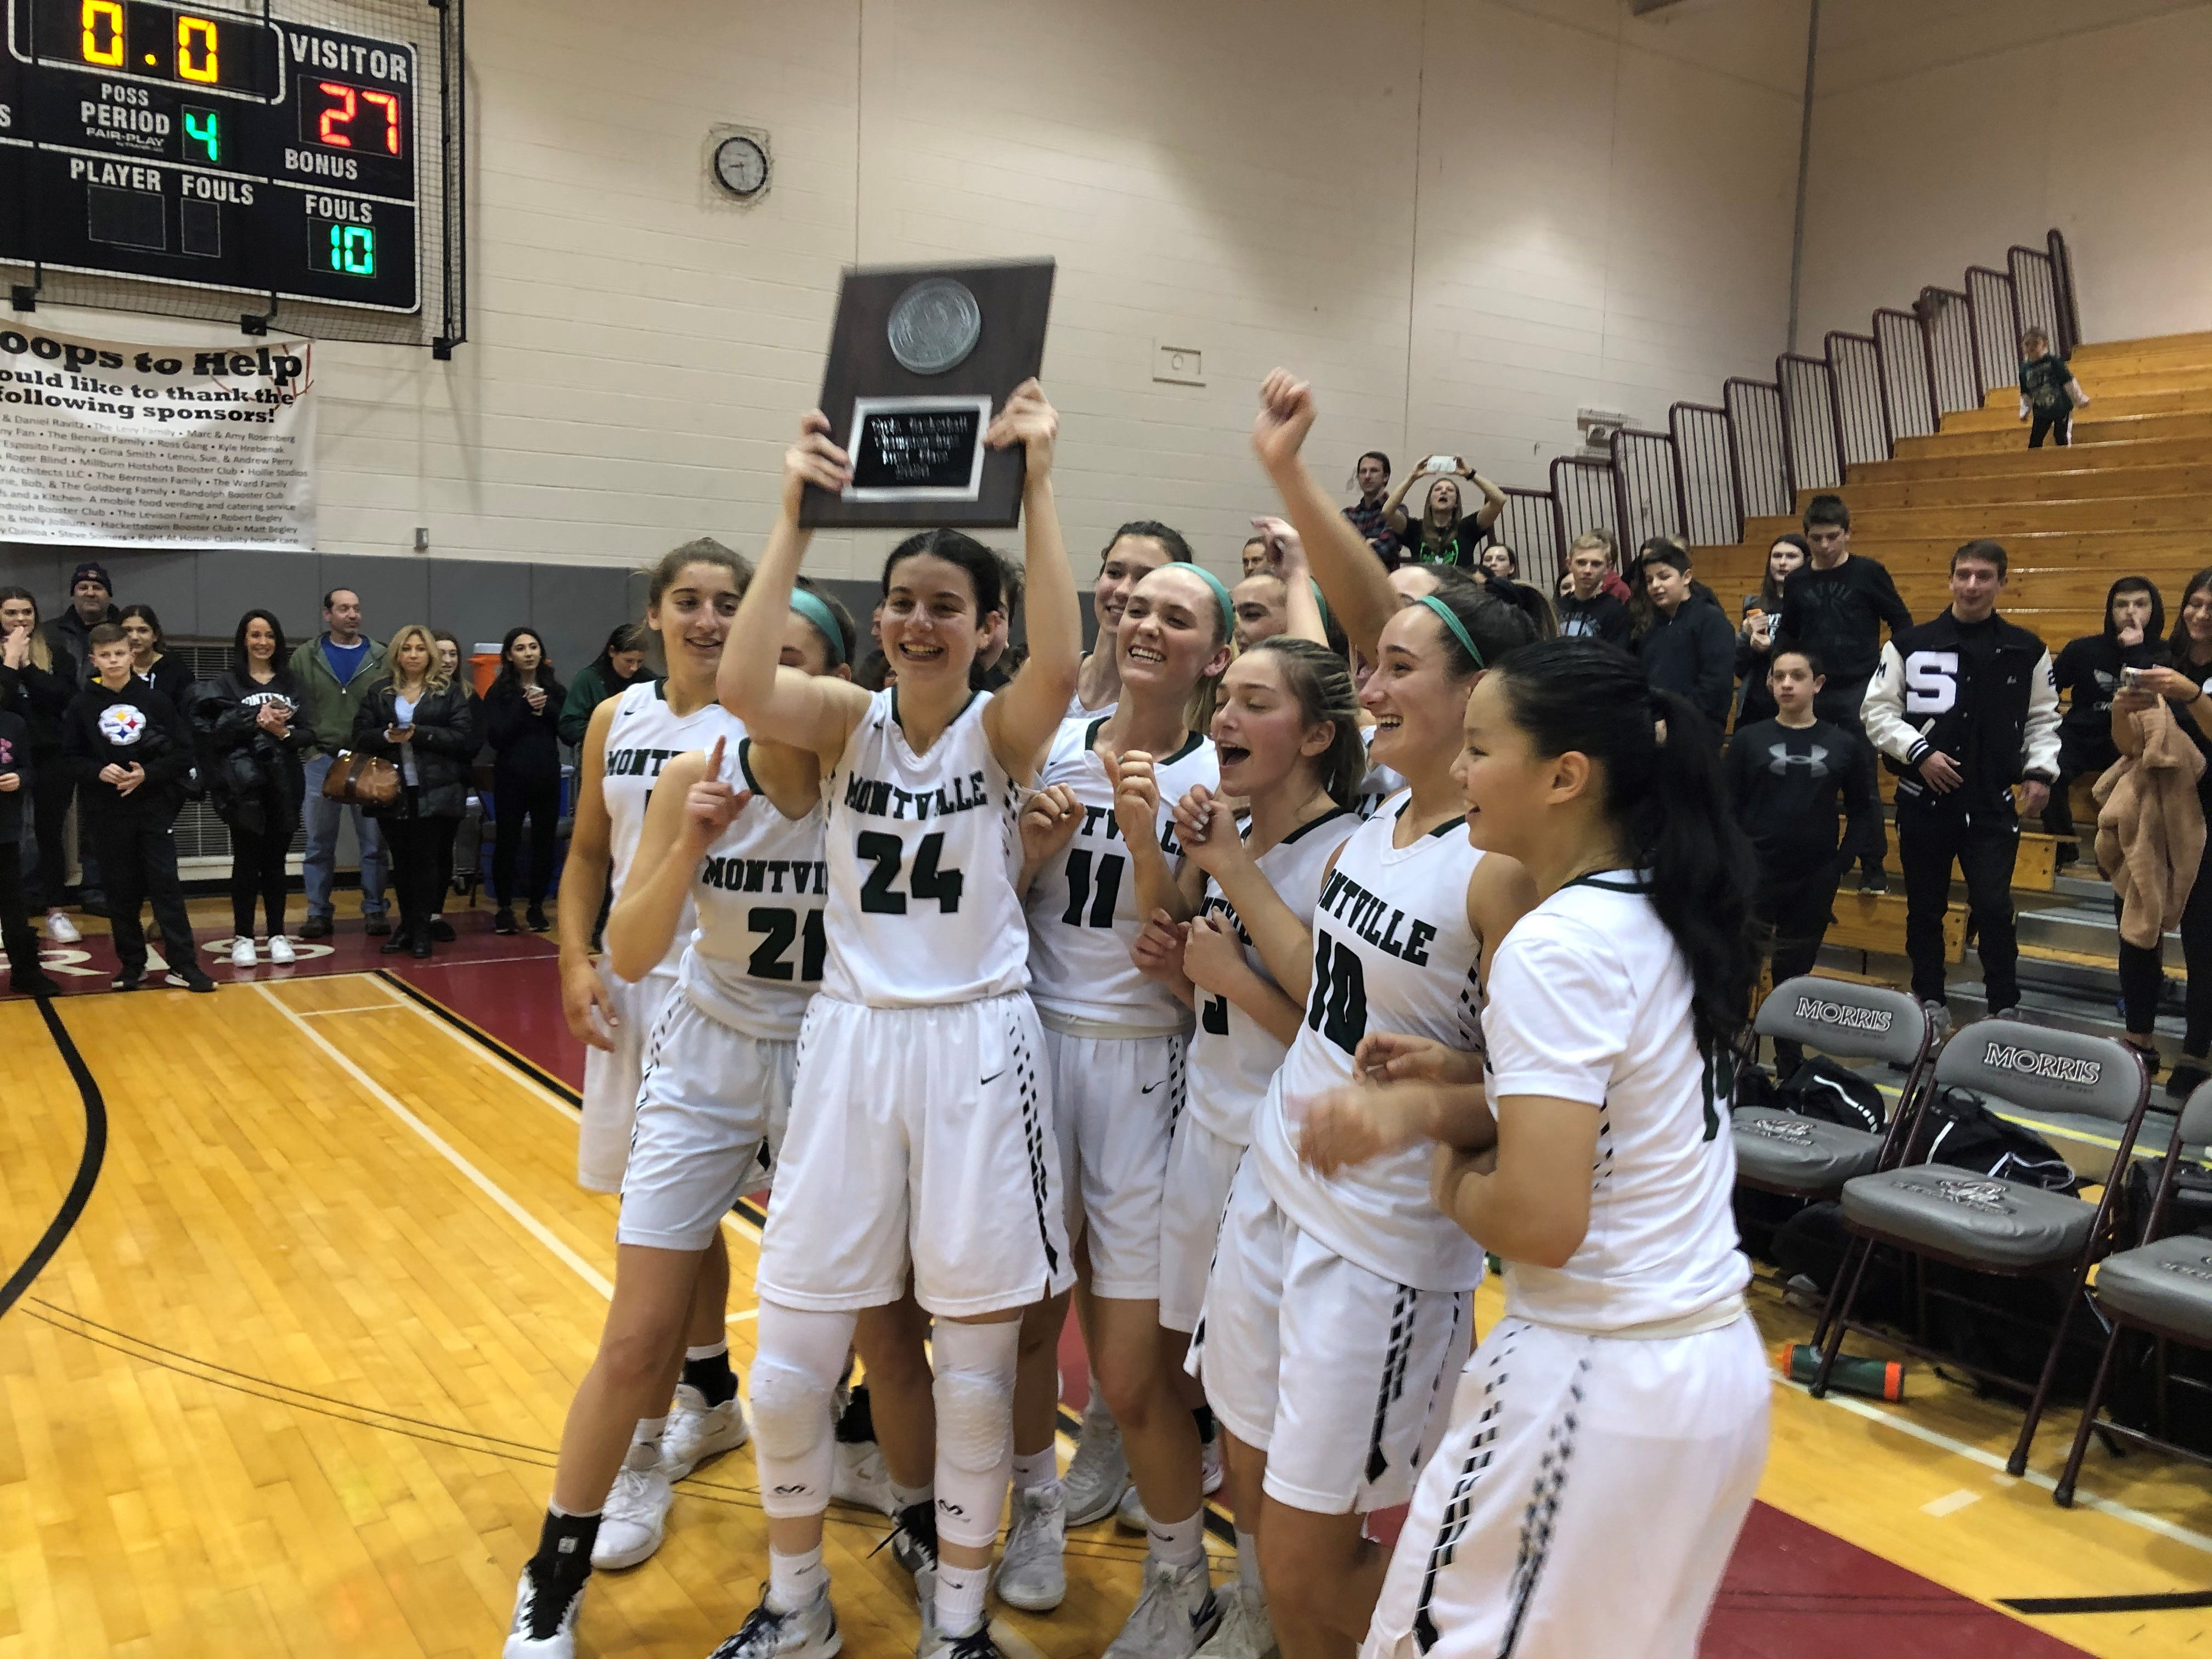 Montville defeated Chatham to earn its first Morris County Tournament title